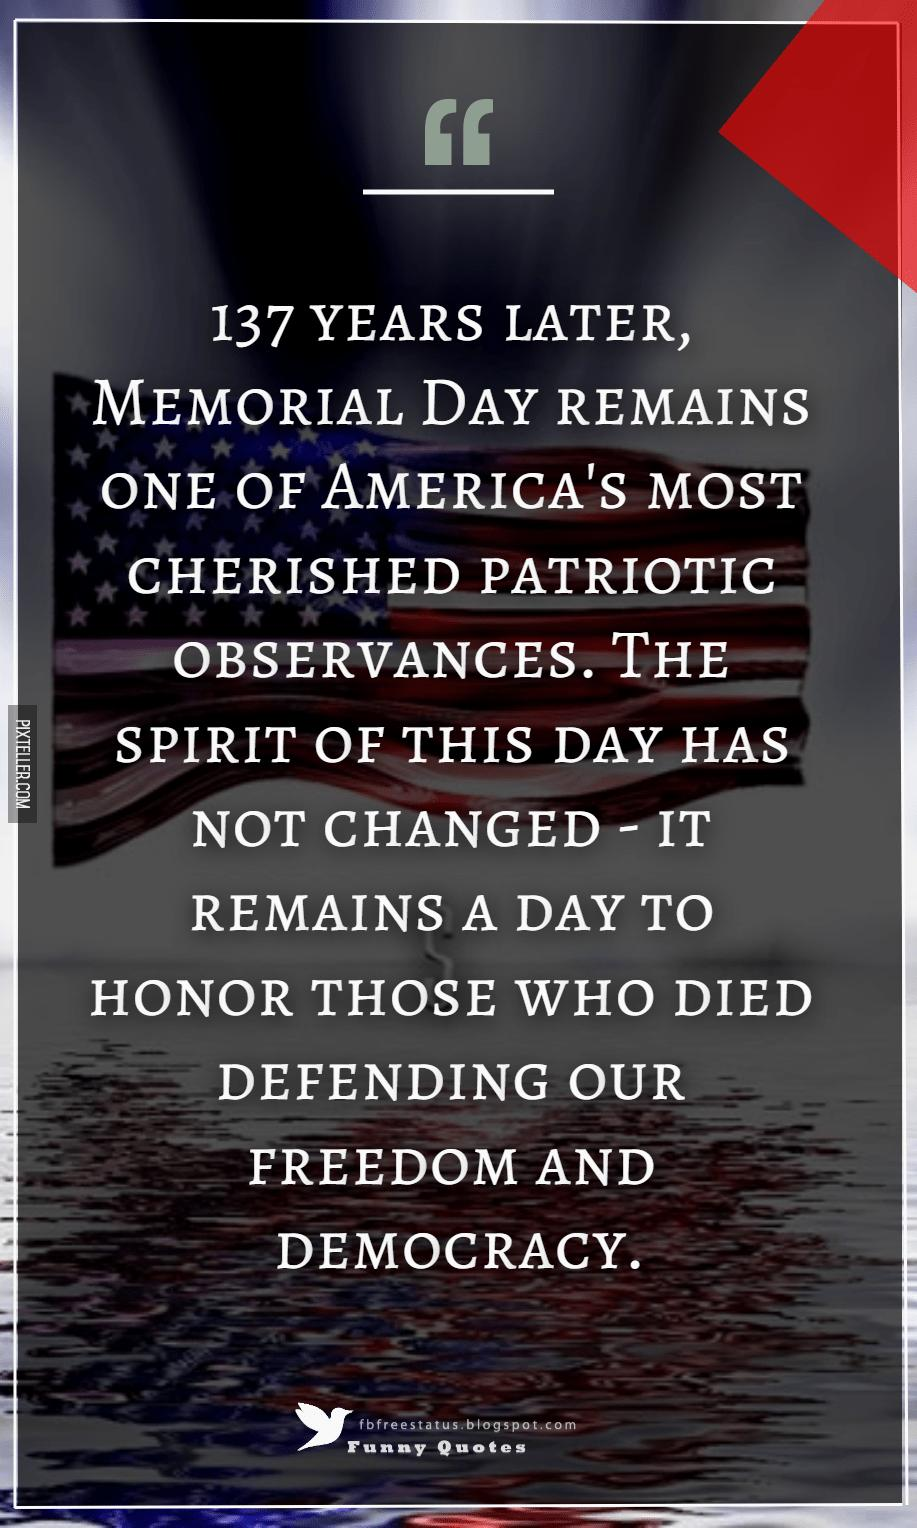 137 years later, Memorial Day remains one of America's most cherished patriotic observances. The spirit of this day has not changed - it remains a day to honor those who died defending our freedom and democracy. ― Doc Hastings